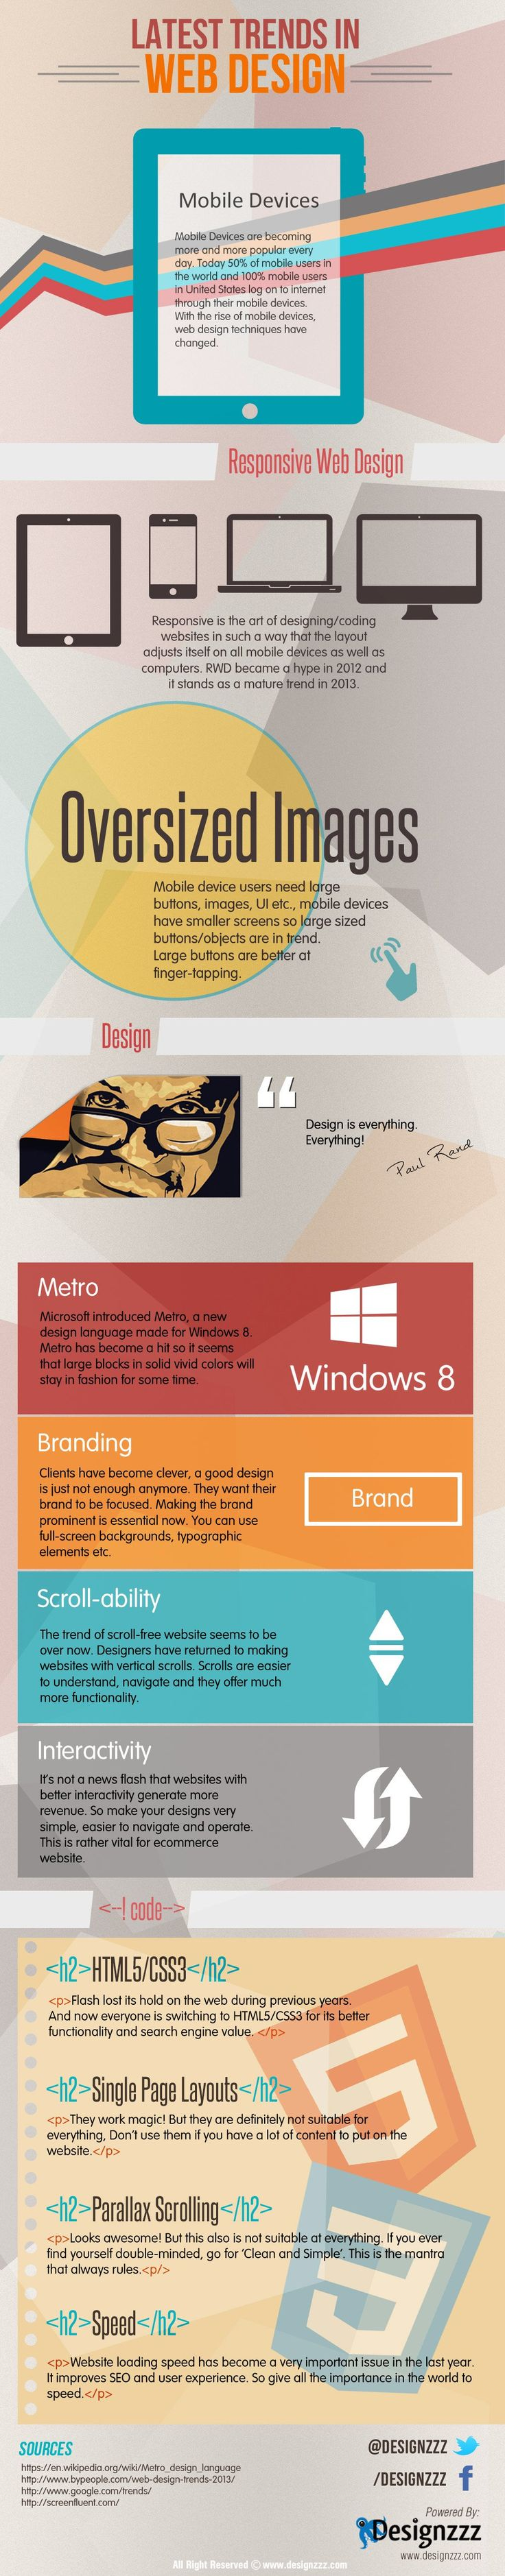 The Latest Trends in #WebDesign. #Infographic